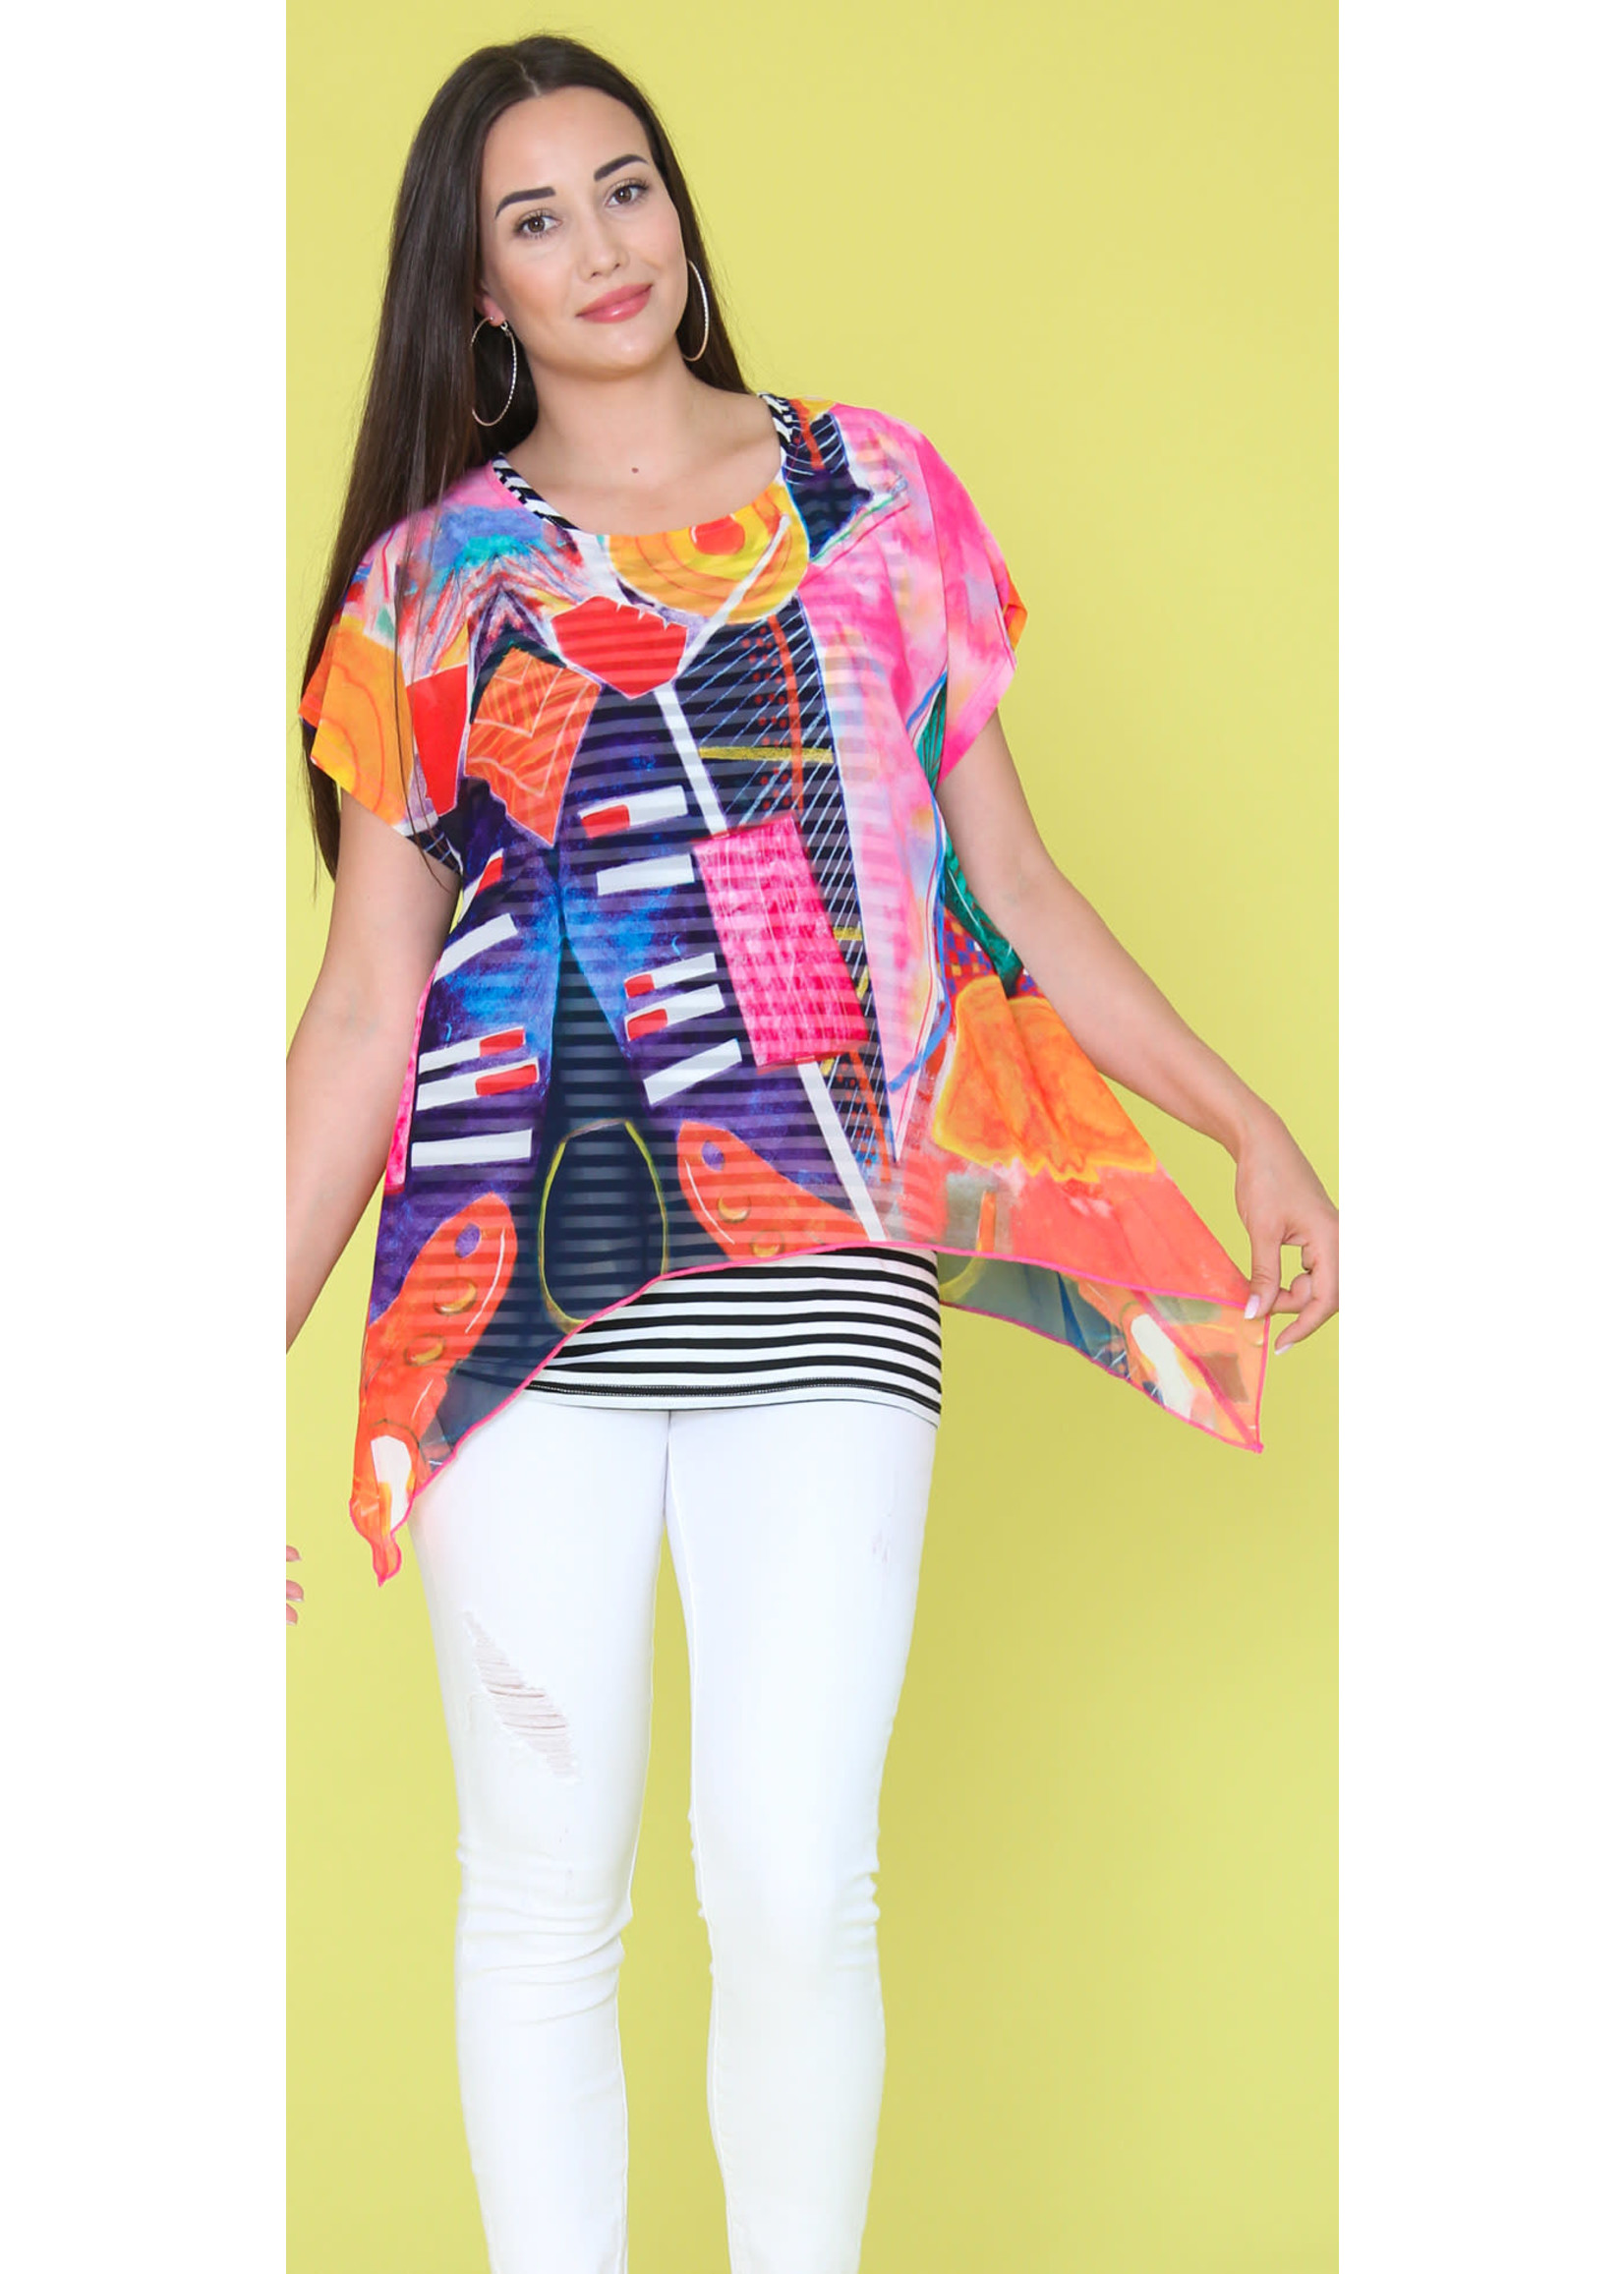 Funsport Knit Top With Striped Camisole